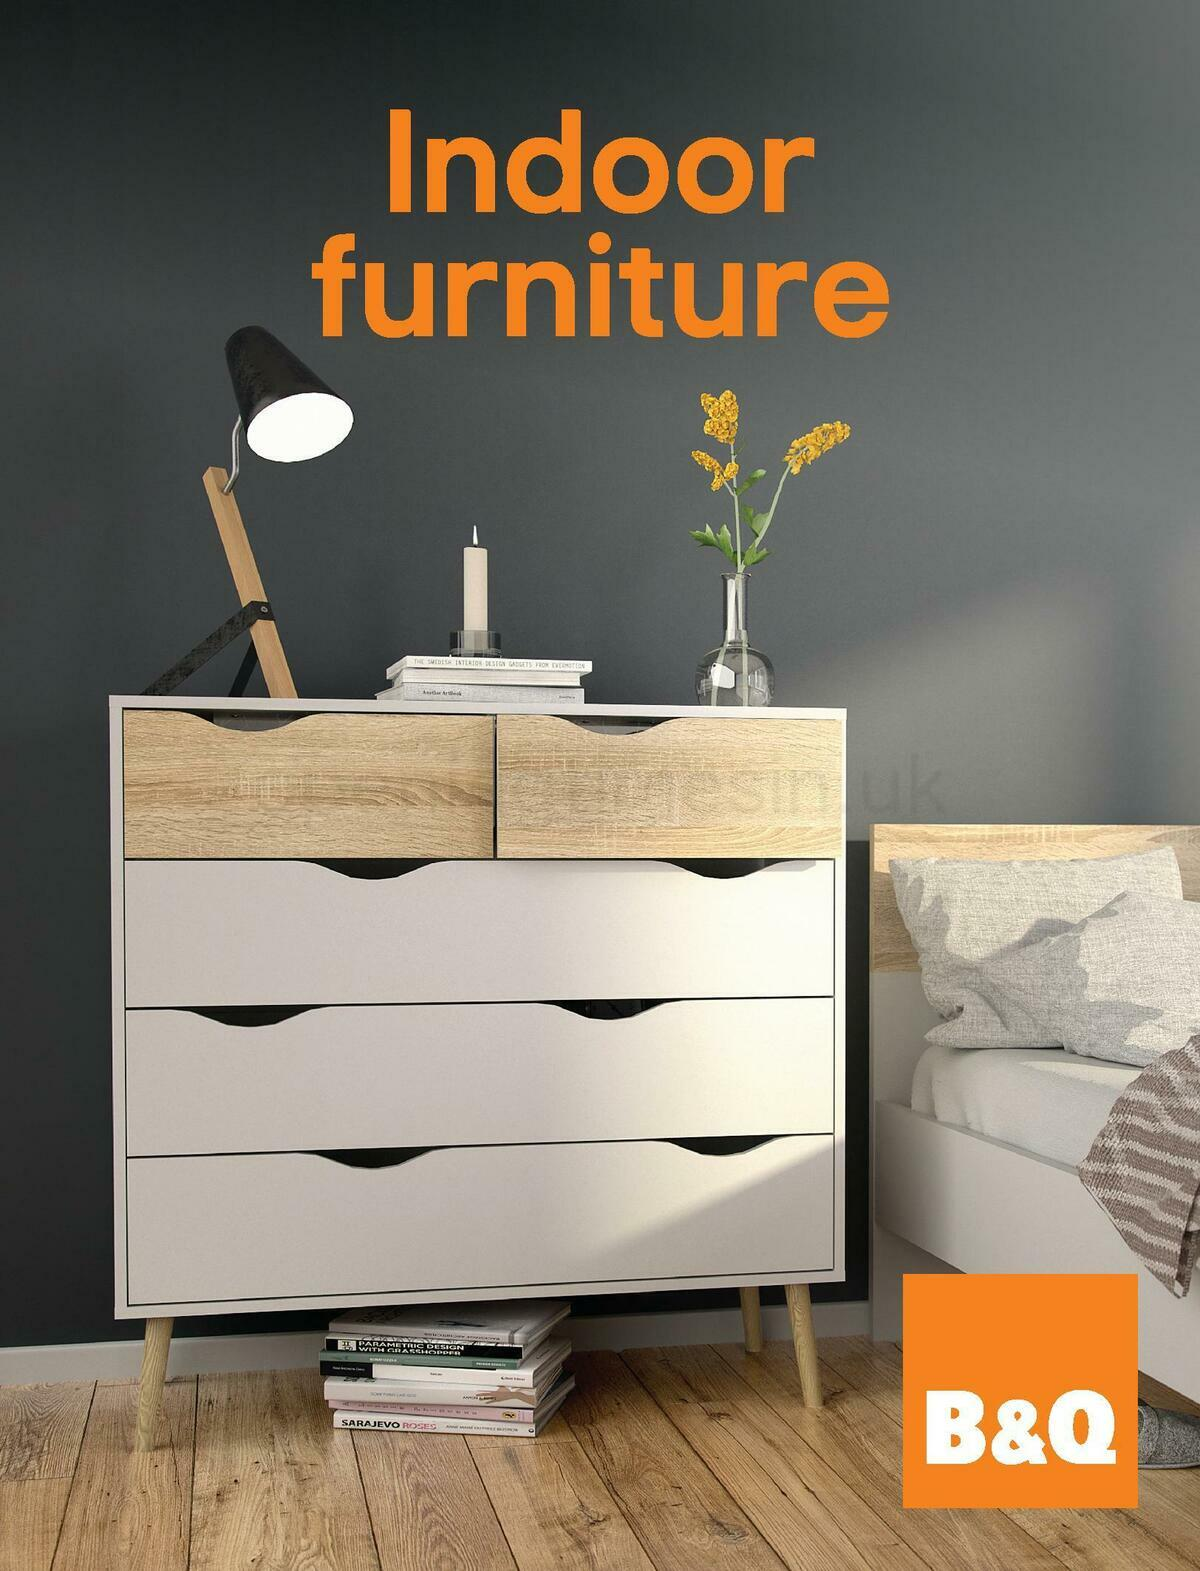 B&Q Indoor Furniture Offers from November 10